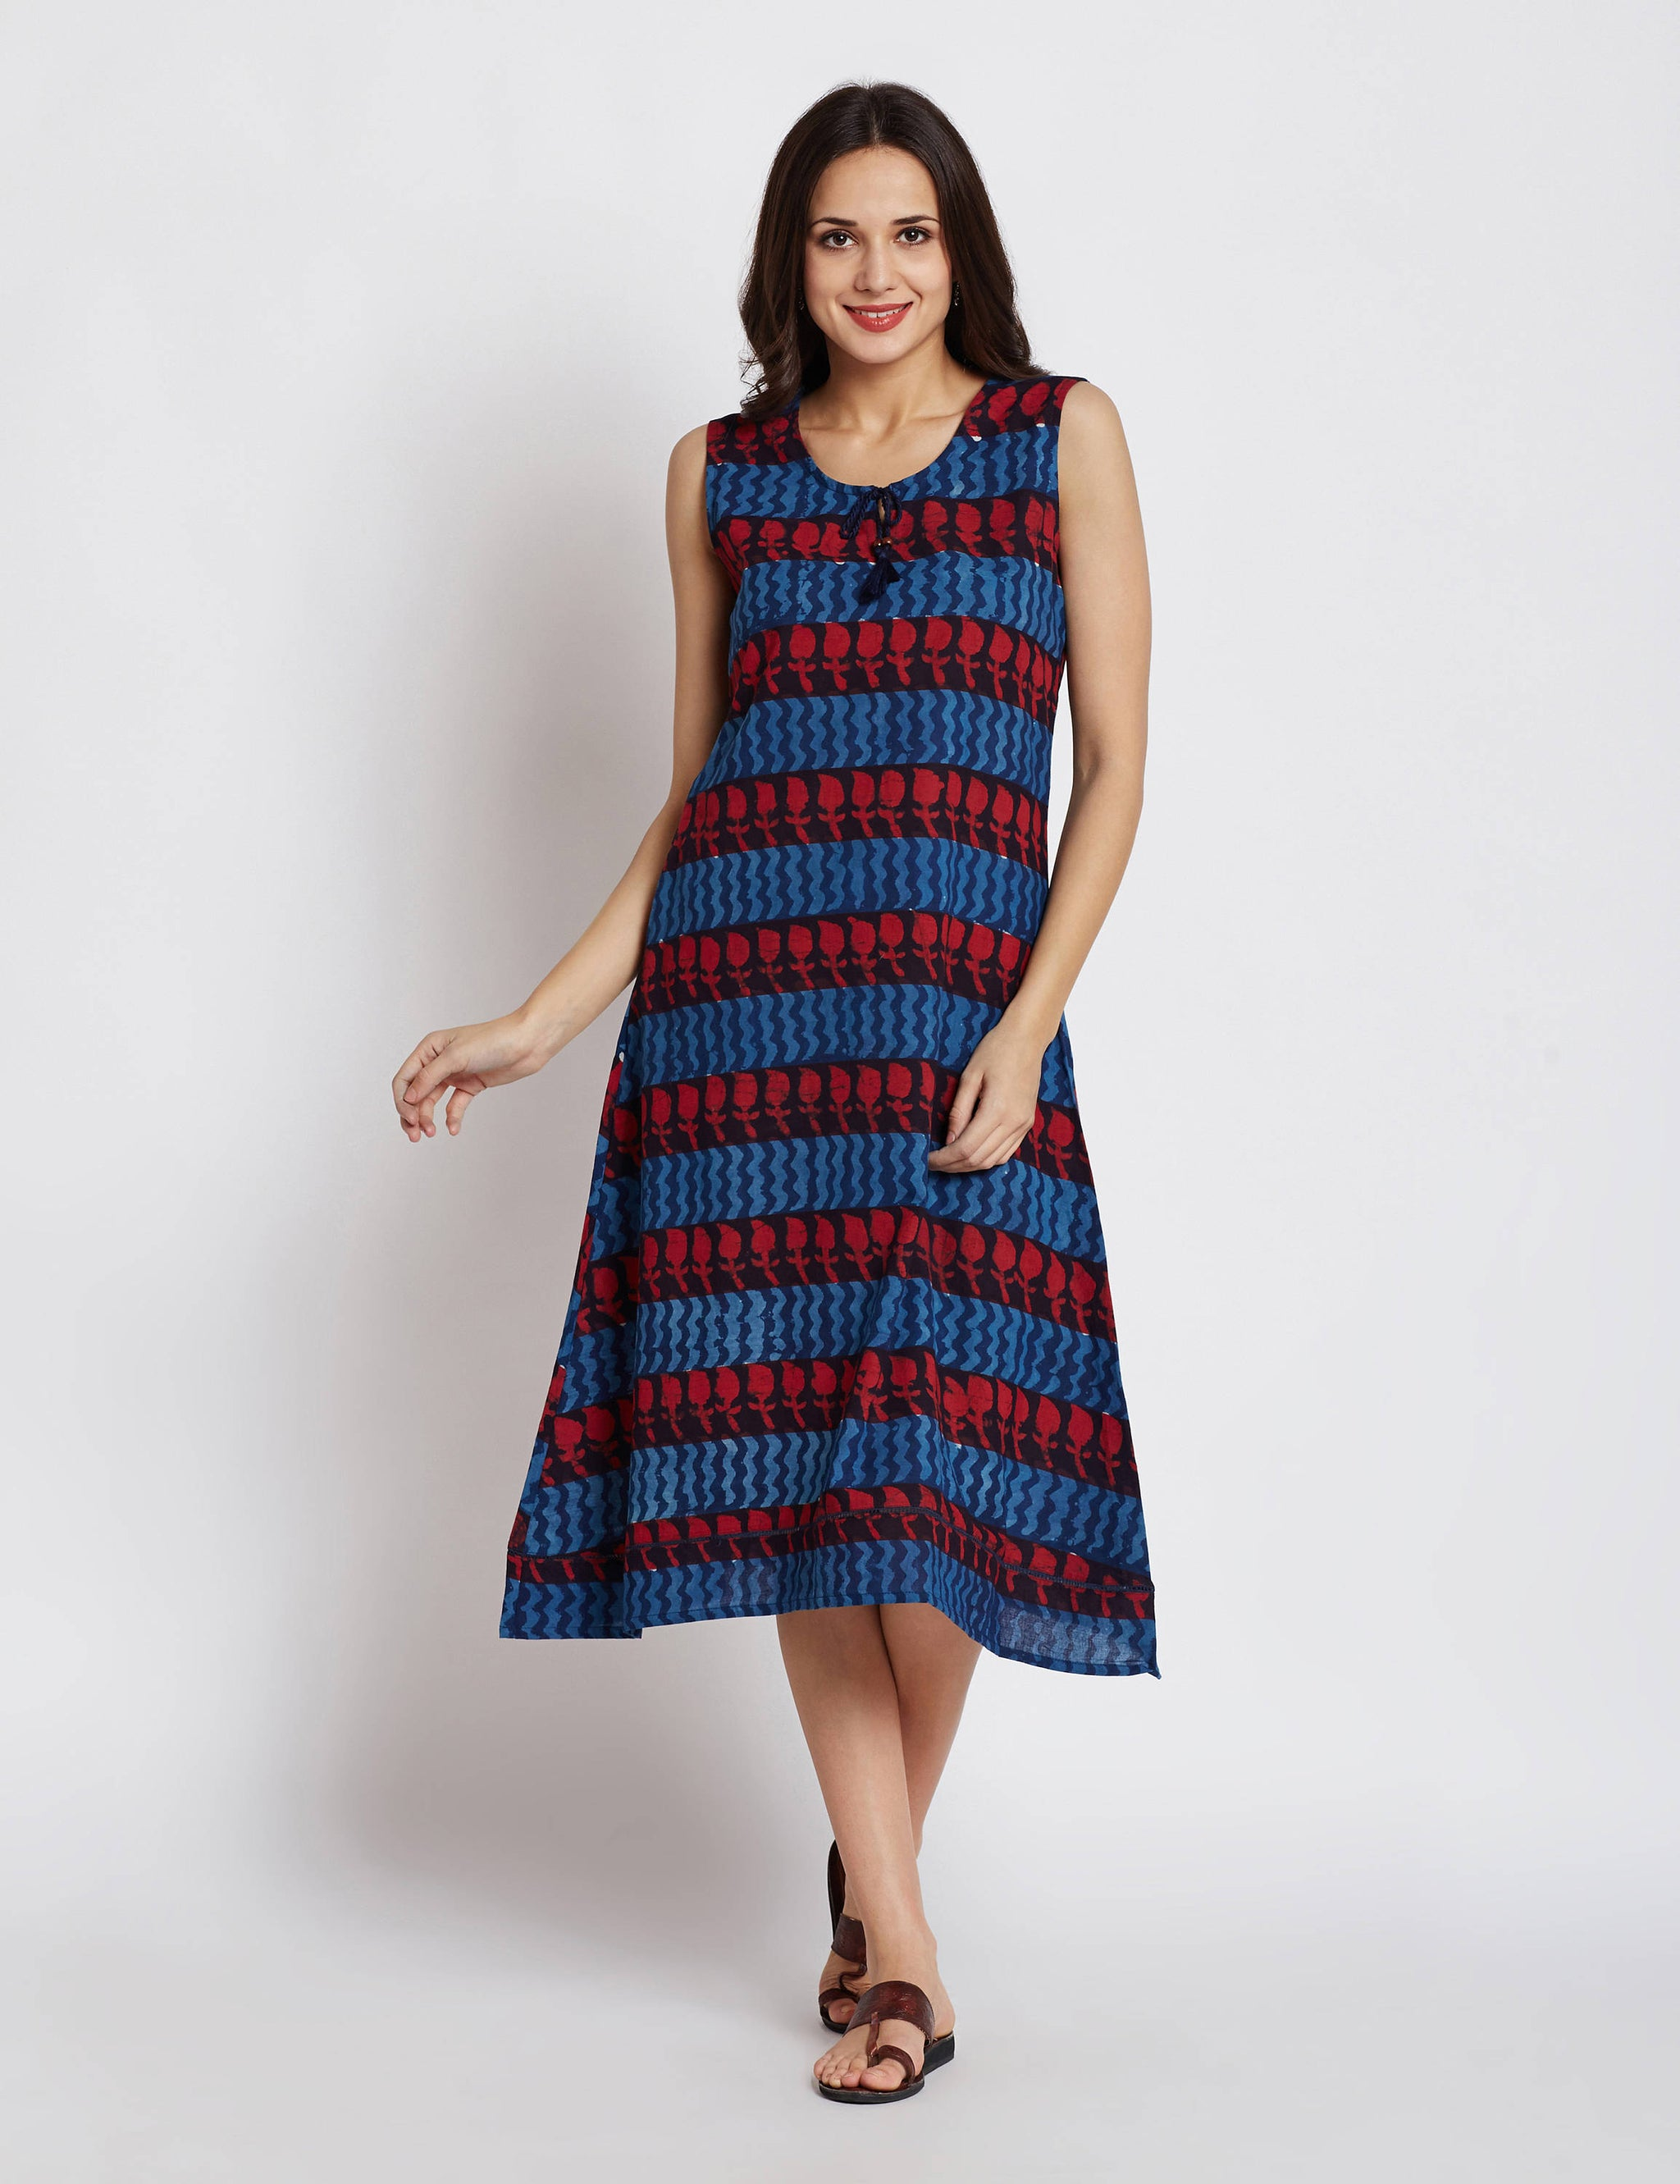 Hand block indigo dabu printed one piece sleeveless dress